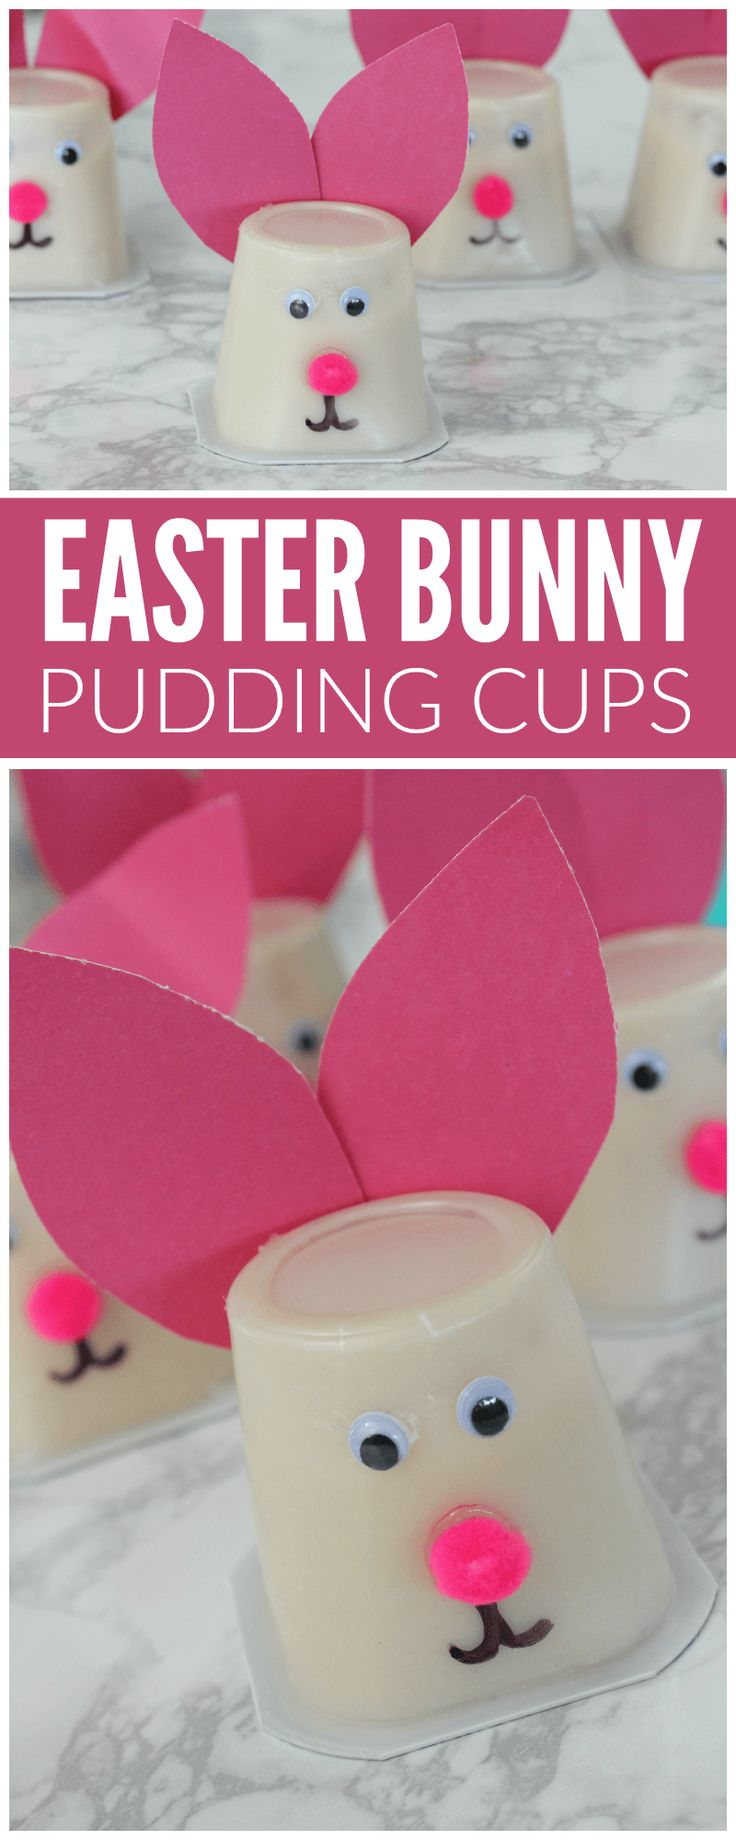 Easter Bunny Pudding Cups -super easy to make and super adorable!